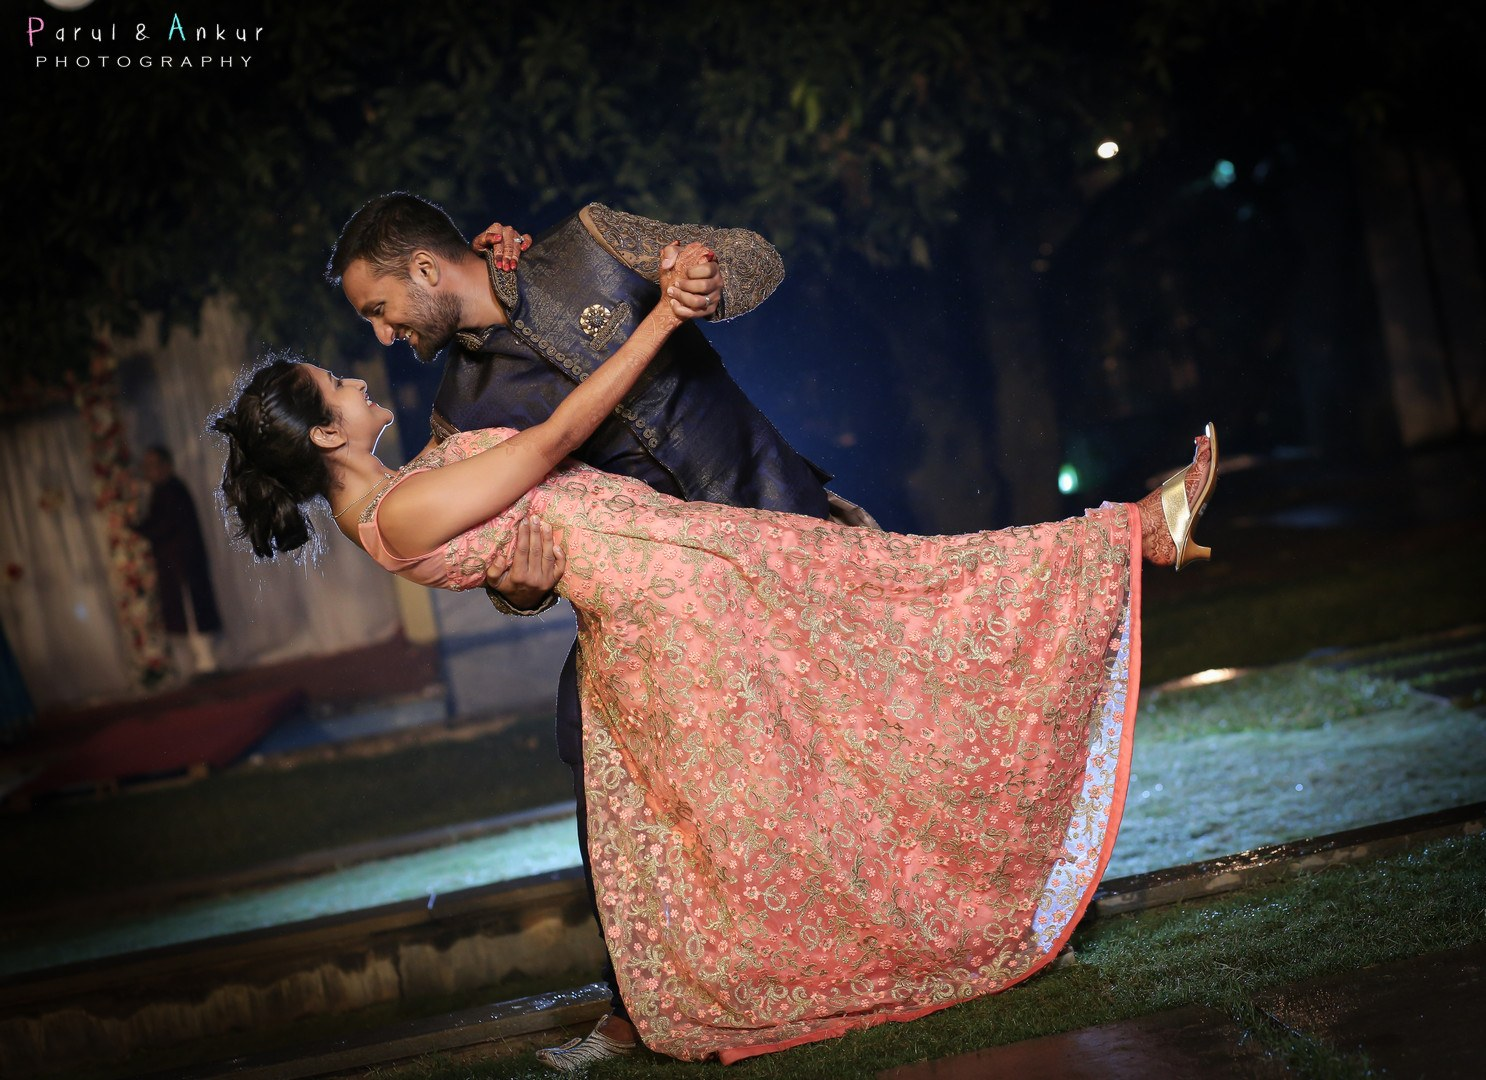 Portfolio - Parul and Ankur Kaushal Photography